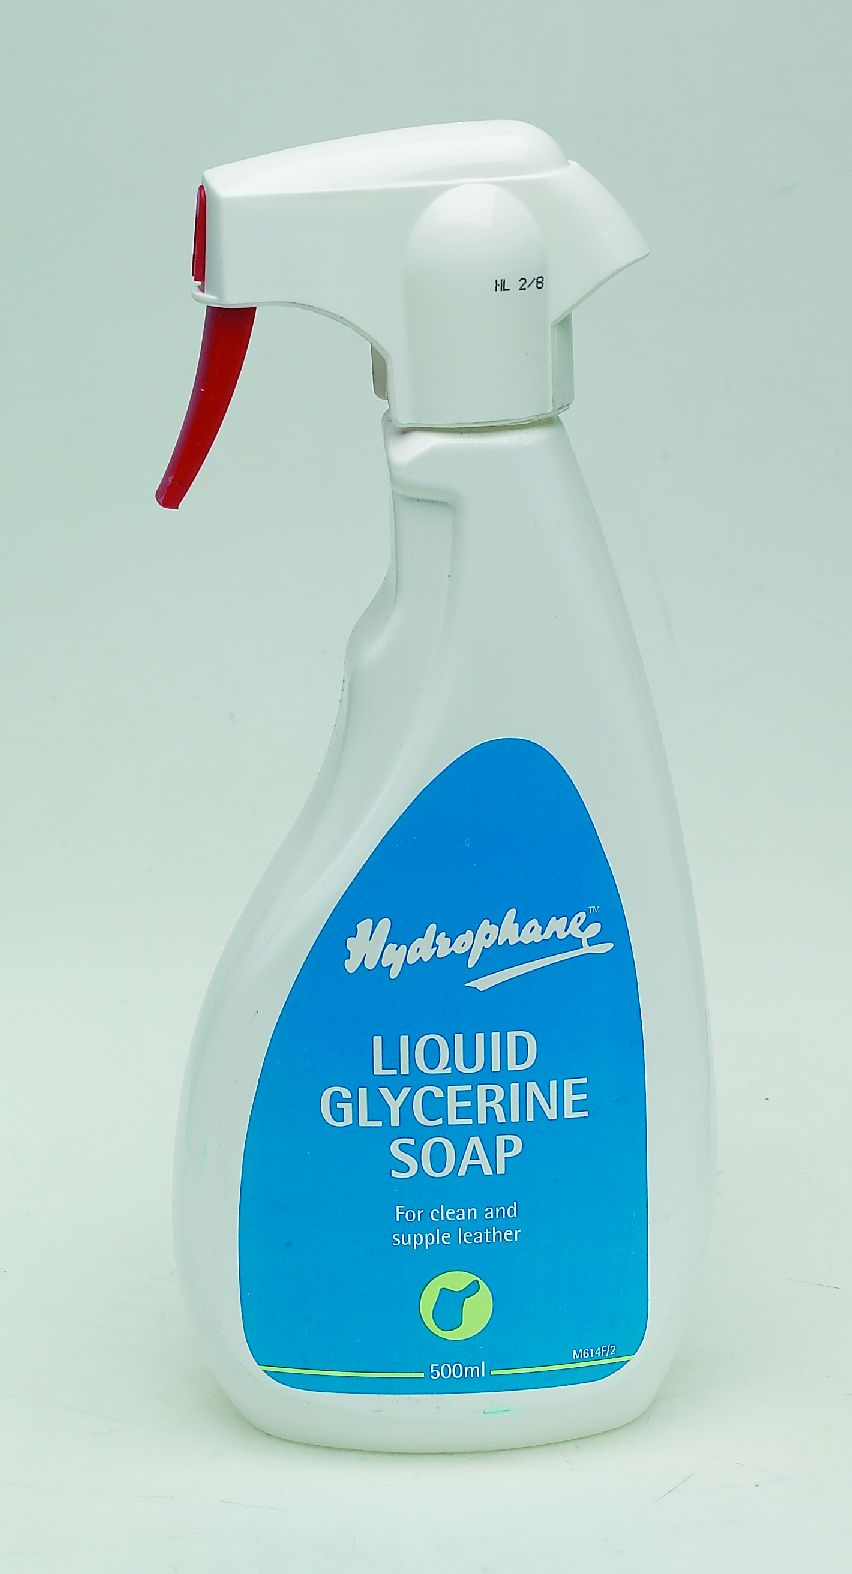 Hydrophane Liquid Glycerine Soap